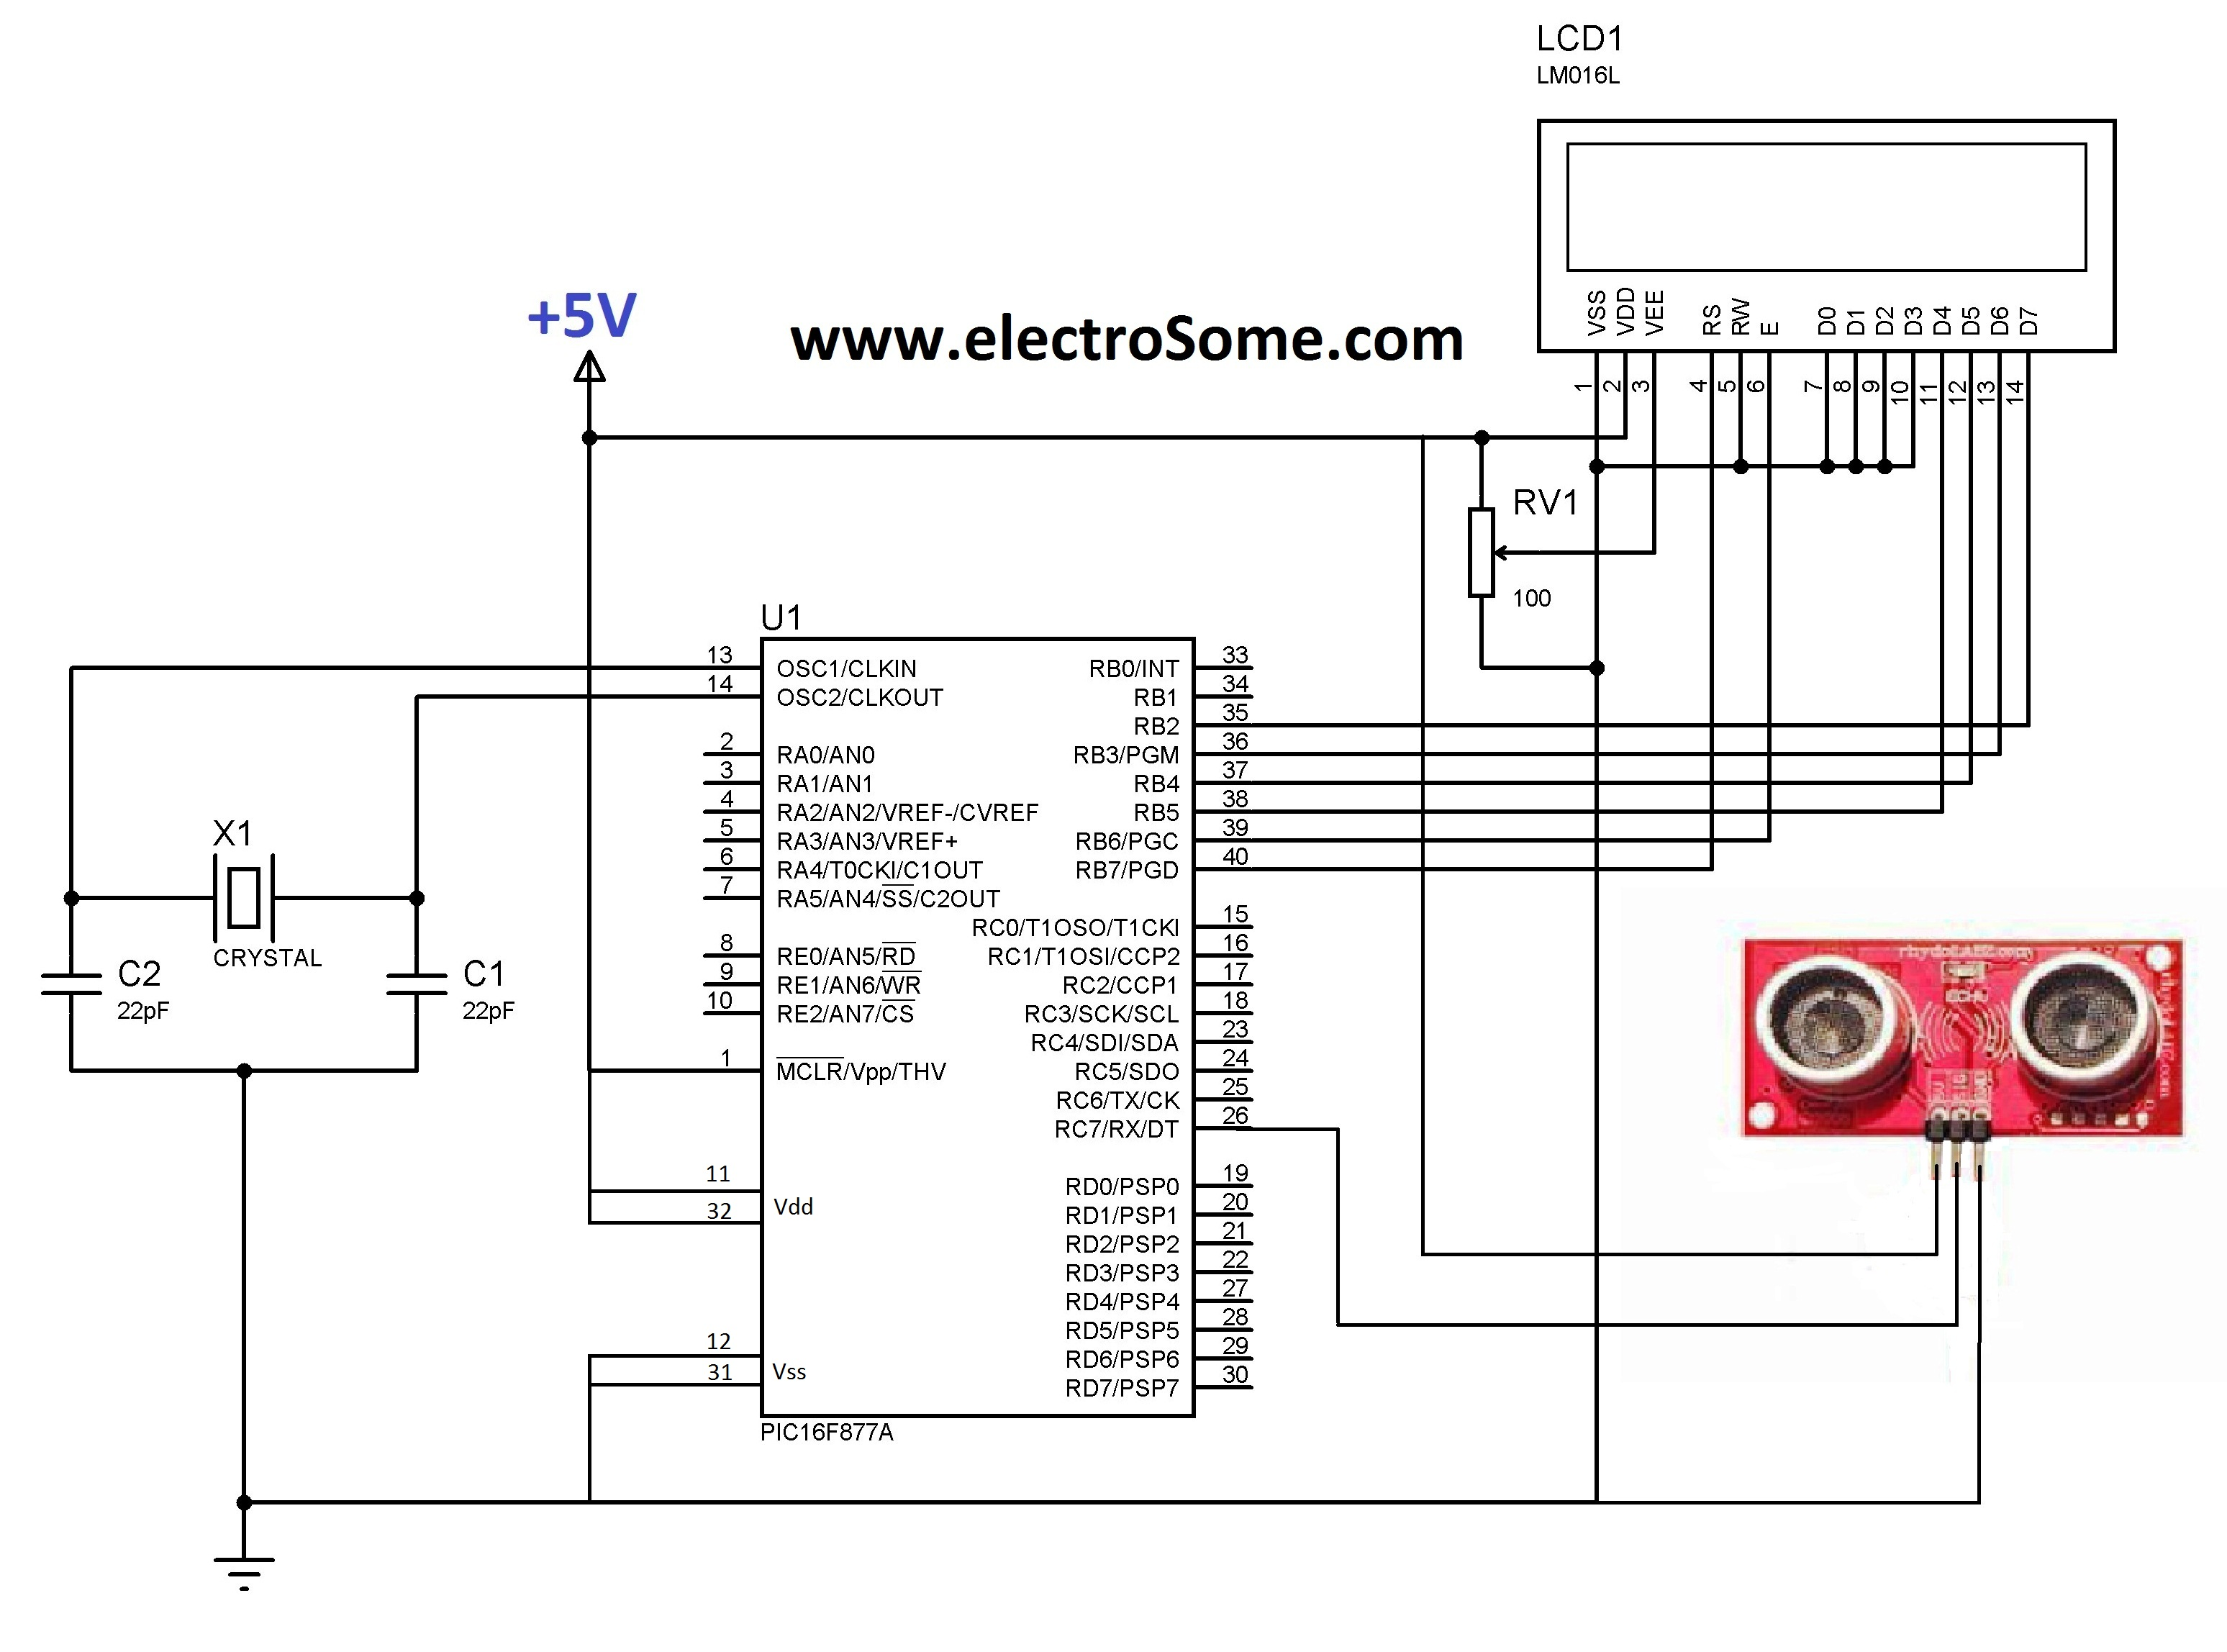 Transducer Ultrasonic Proximity Sensor Circuit Wiring Diagrams Circuitdiagram Amplifiercircuit Ultrasonictransducerdrivecircuit Page 4 Audio Circuits Next Gr Rh Schematic